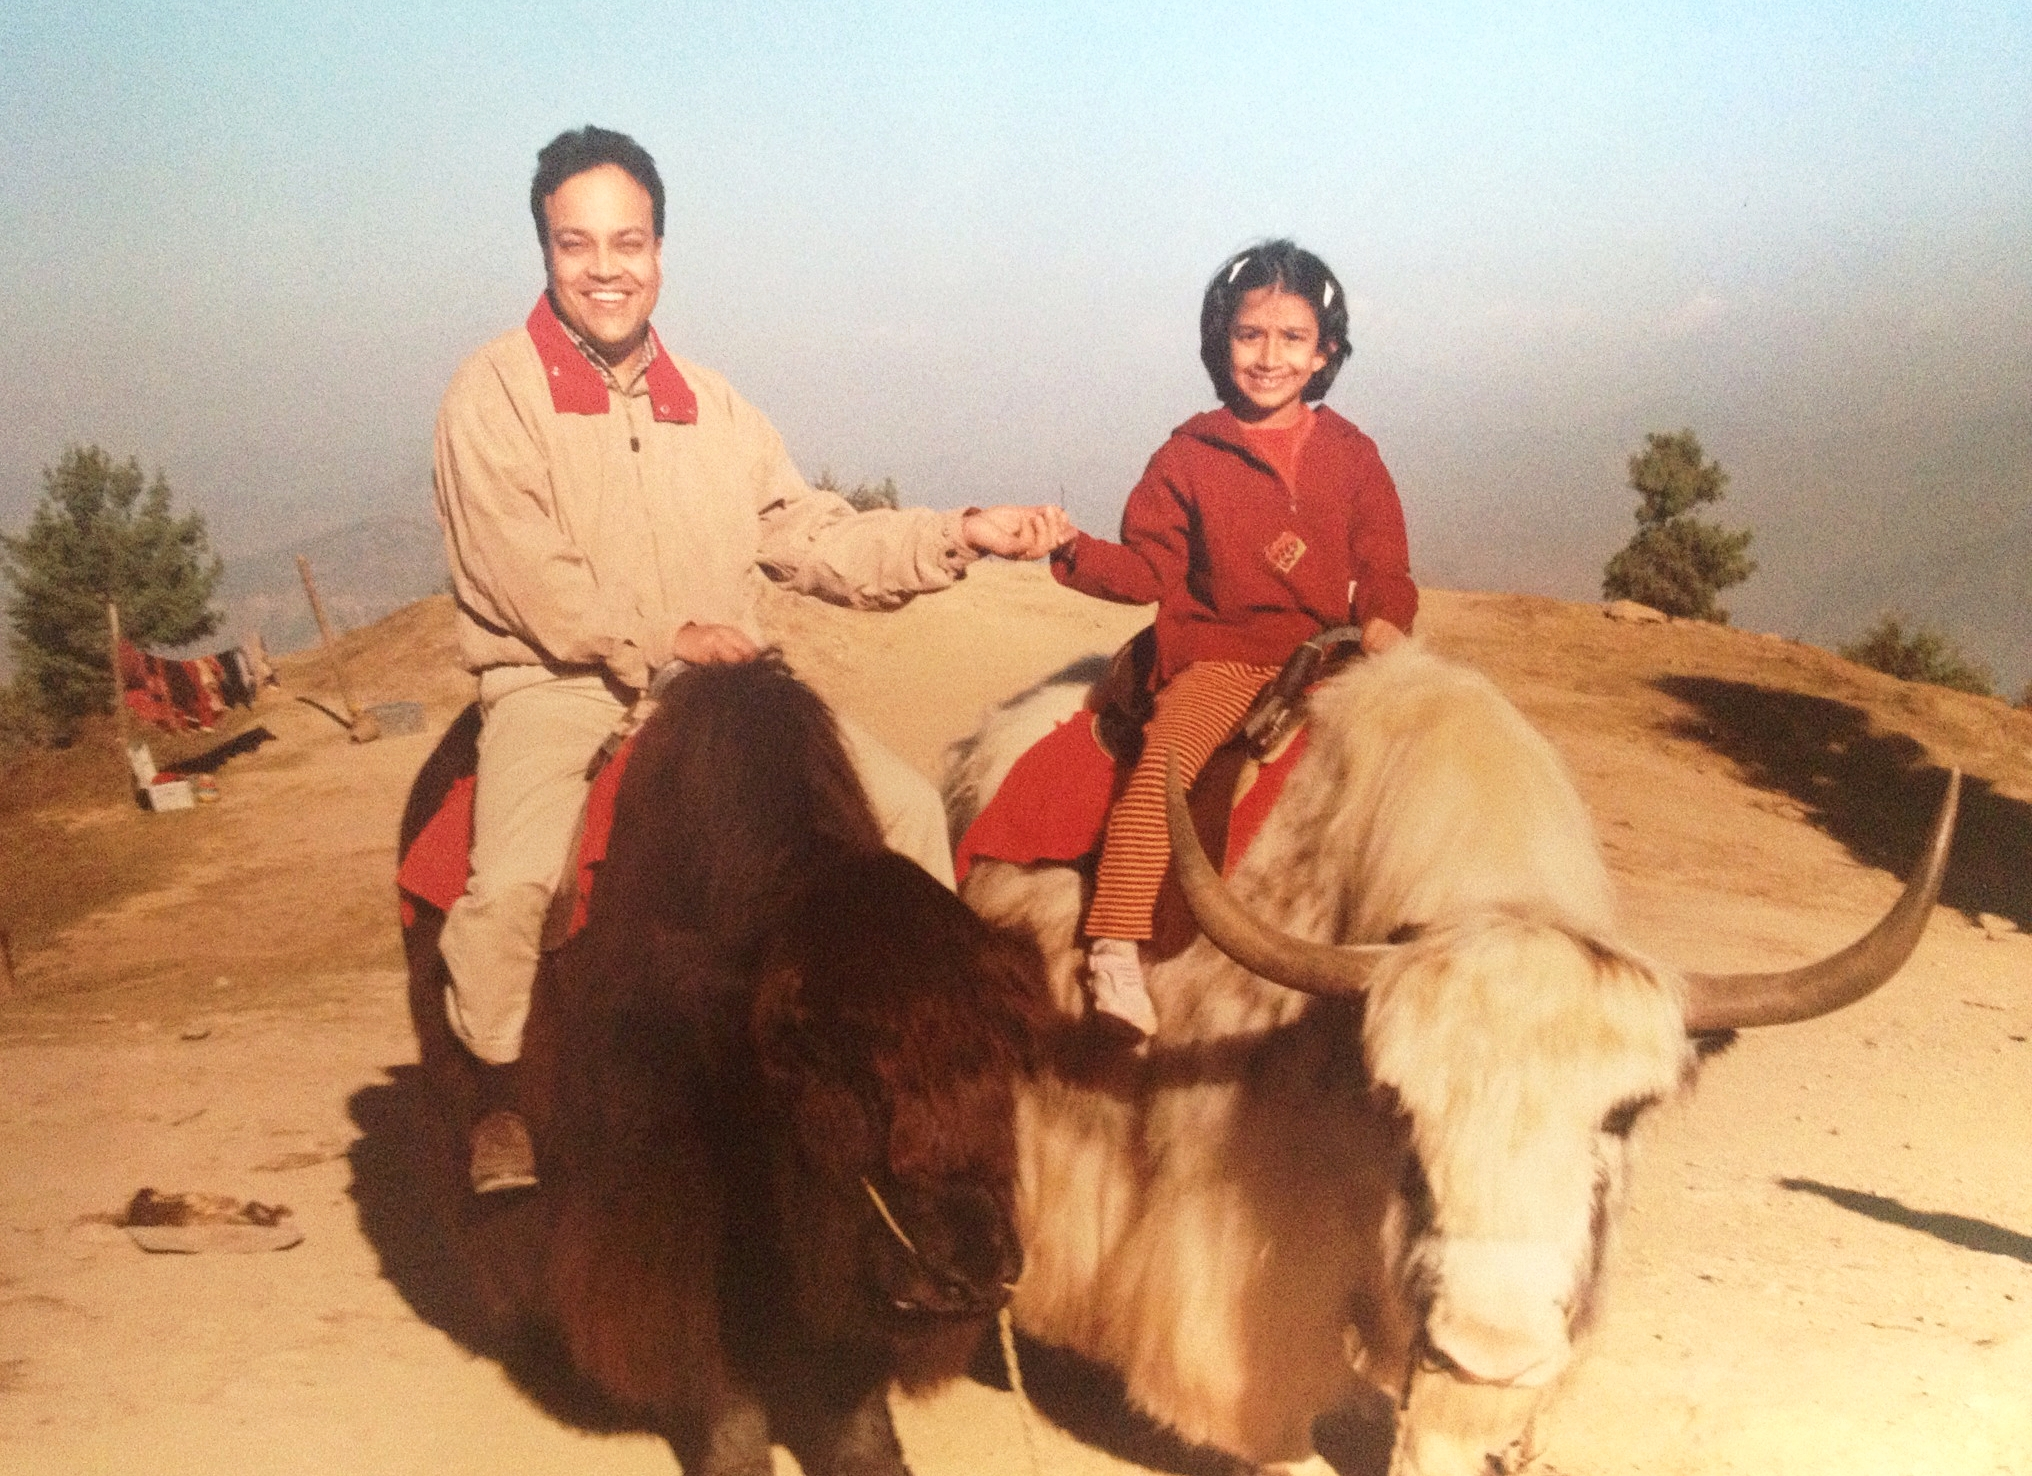 My dad and I riding yaks at the top of a mountain in Shimla, one of the Northern-most parts of India, by the Himalayan foothills.